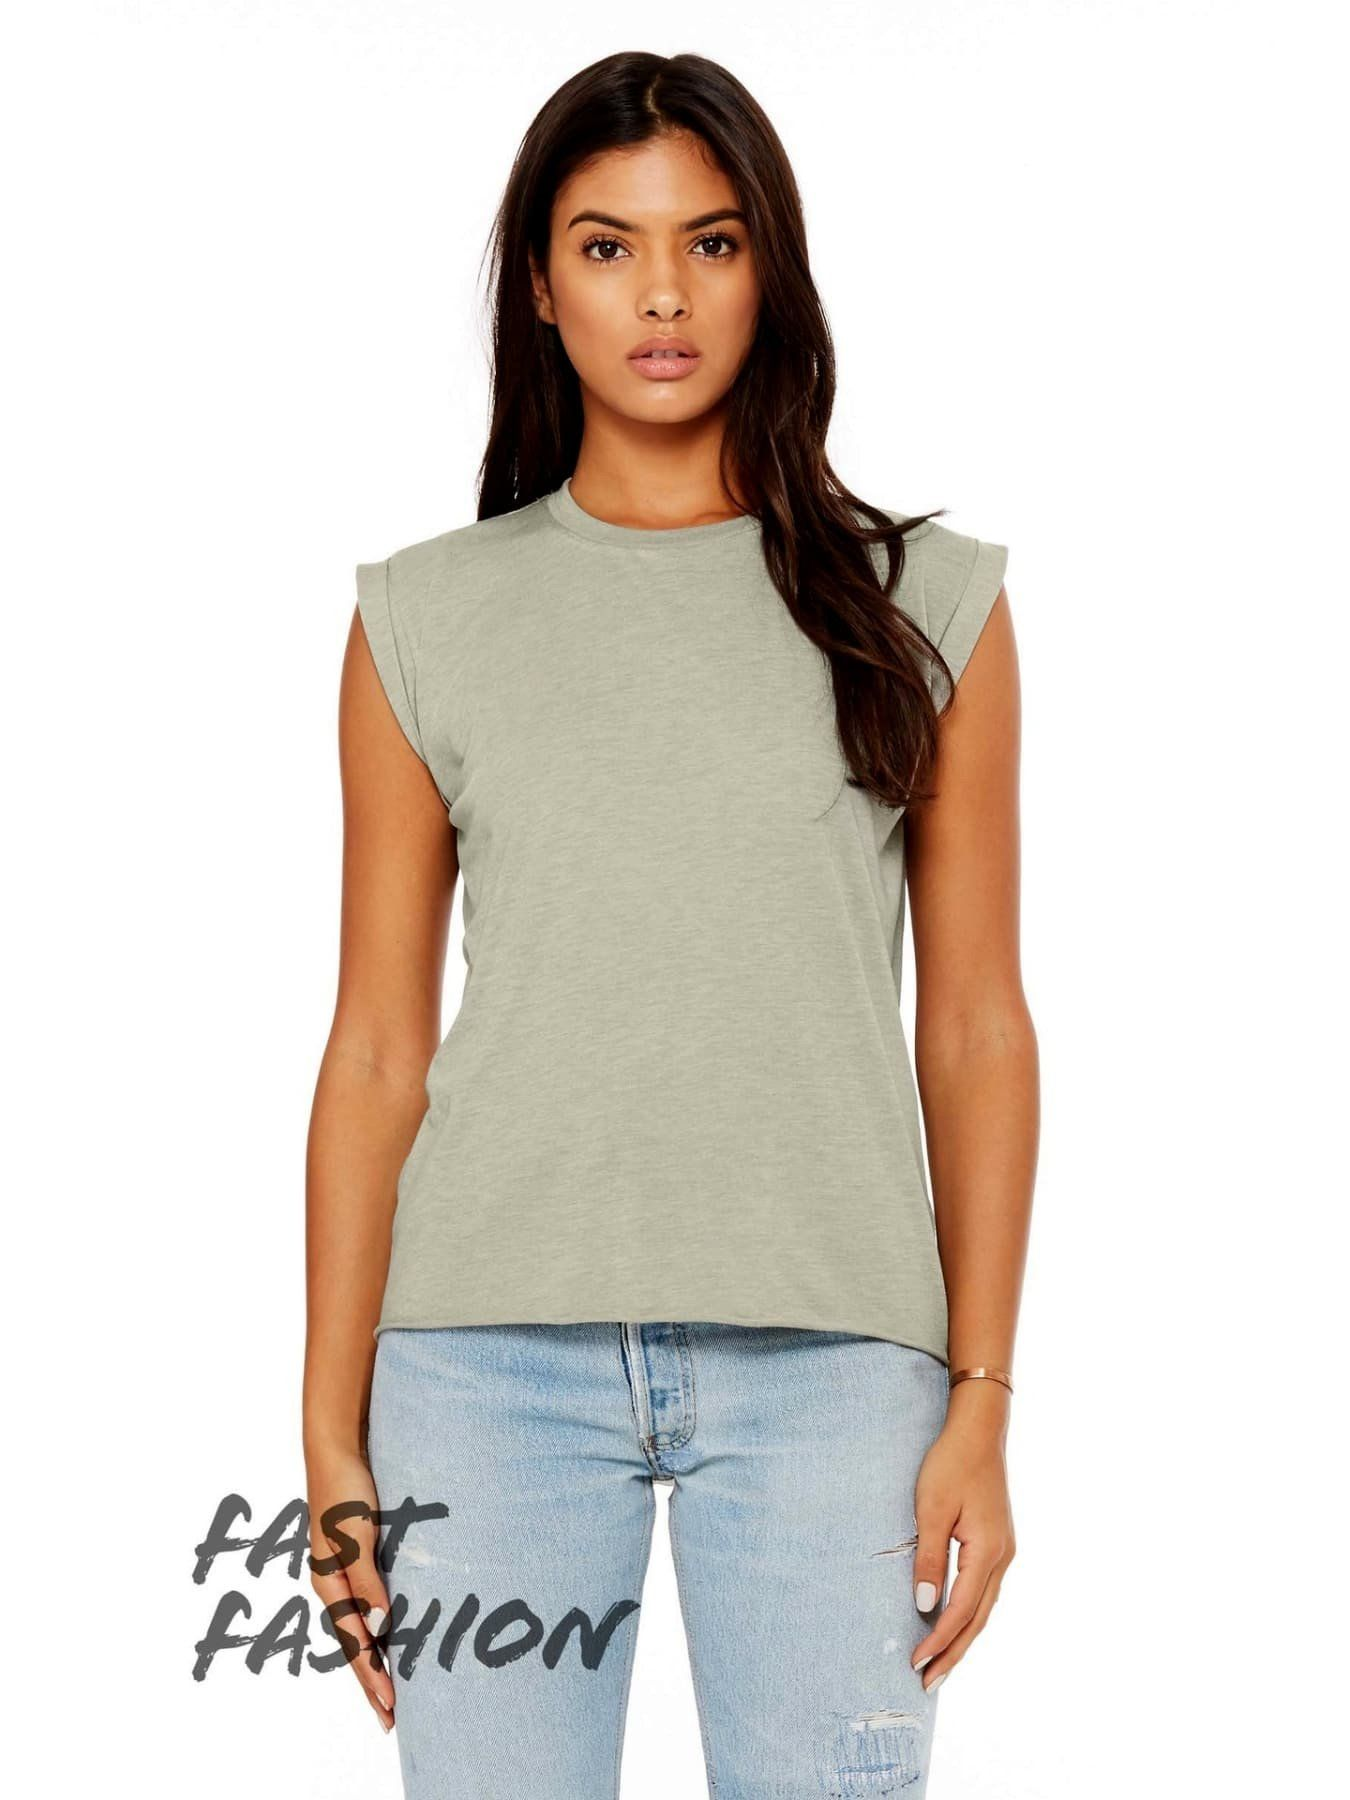 449c5308e8d3f Women s Flowy Muscle Tee with Rolled Cuff